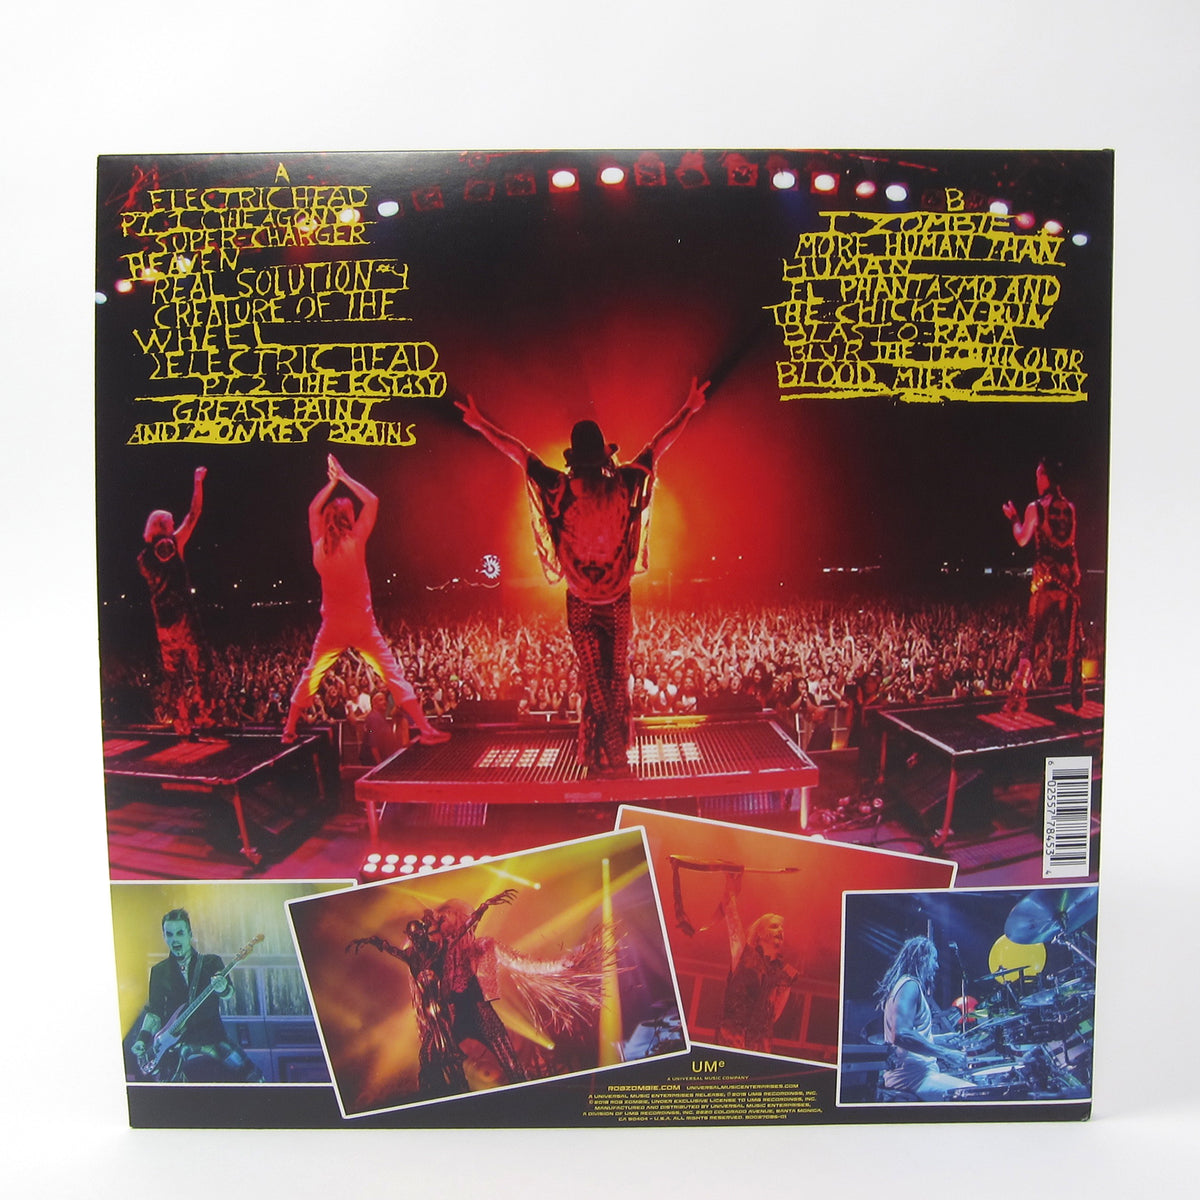 Rob Zombie: Astro-Creep - 2000 Live Vinyl LP